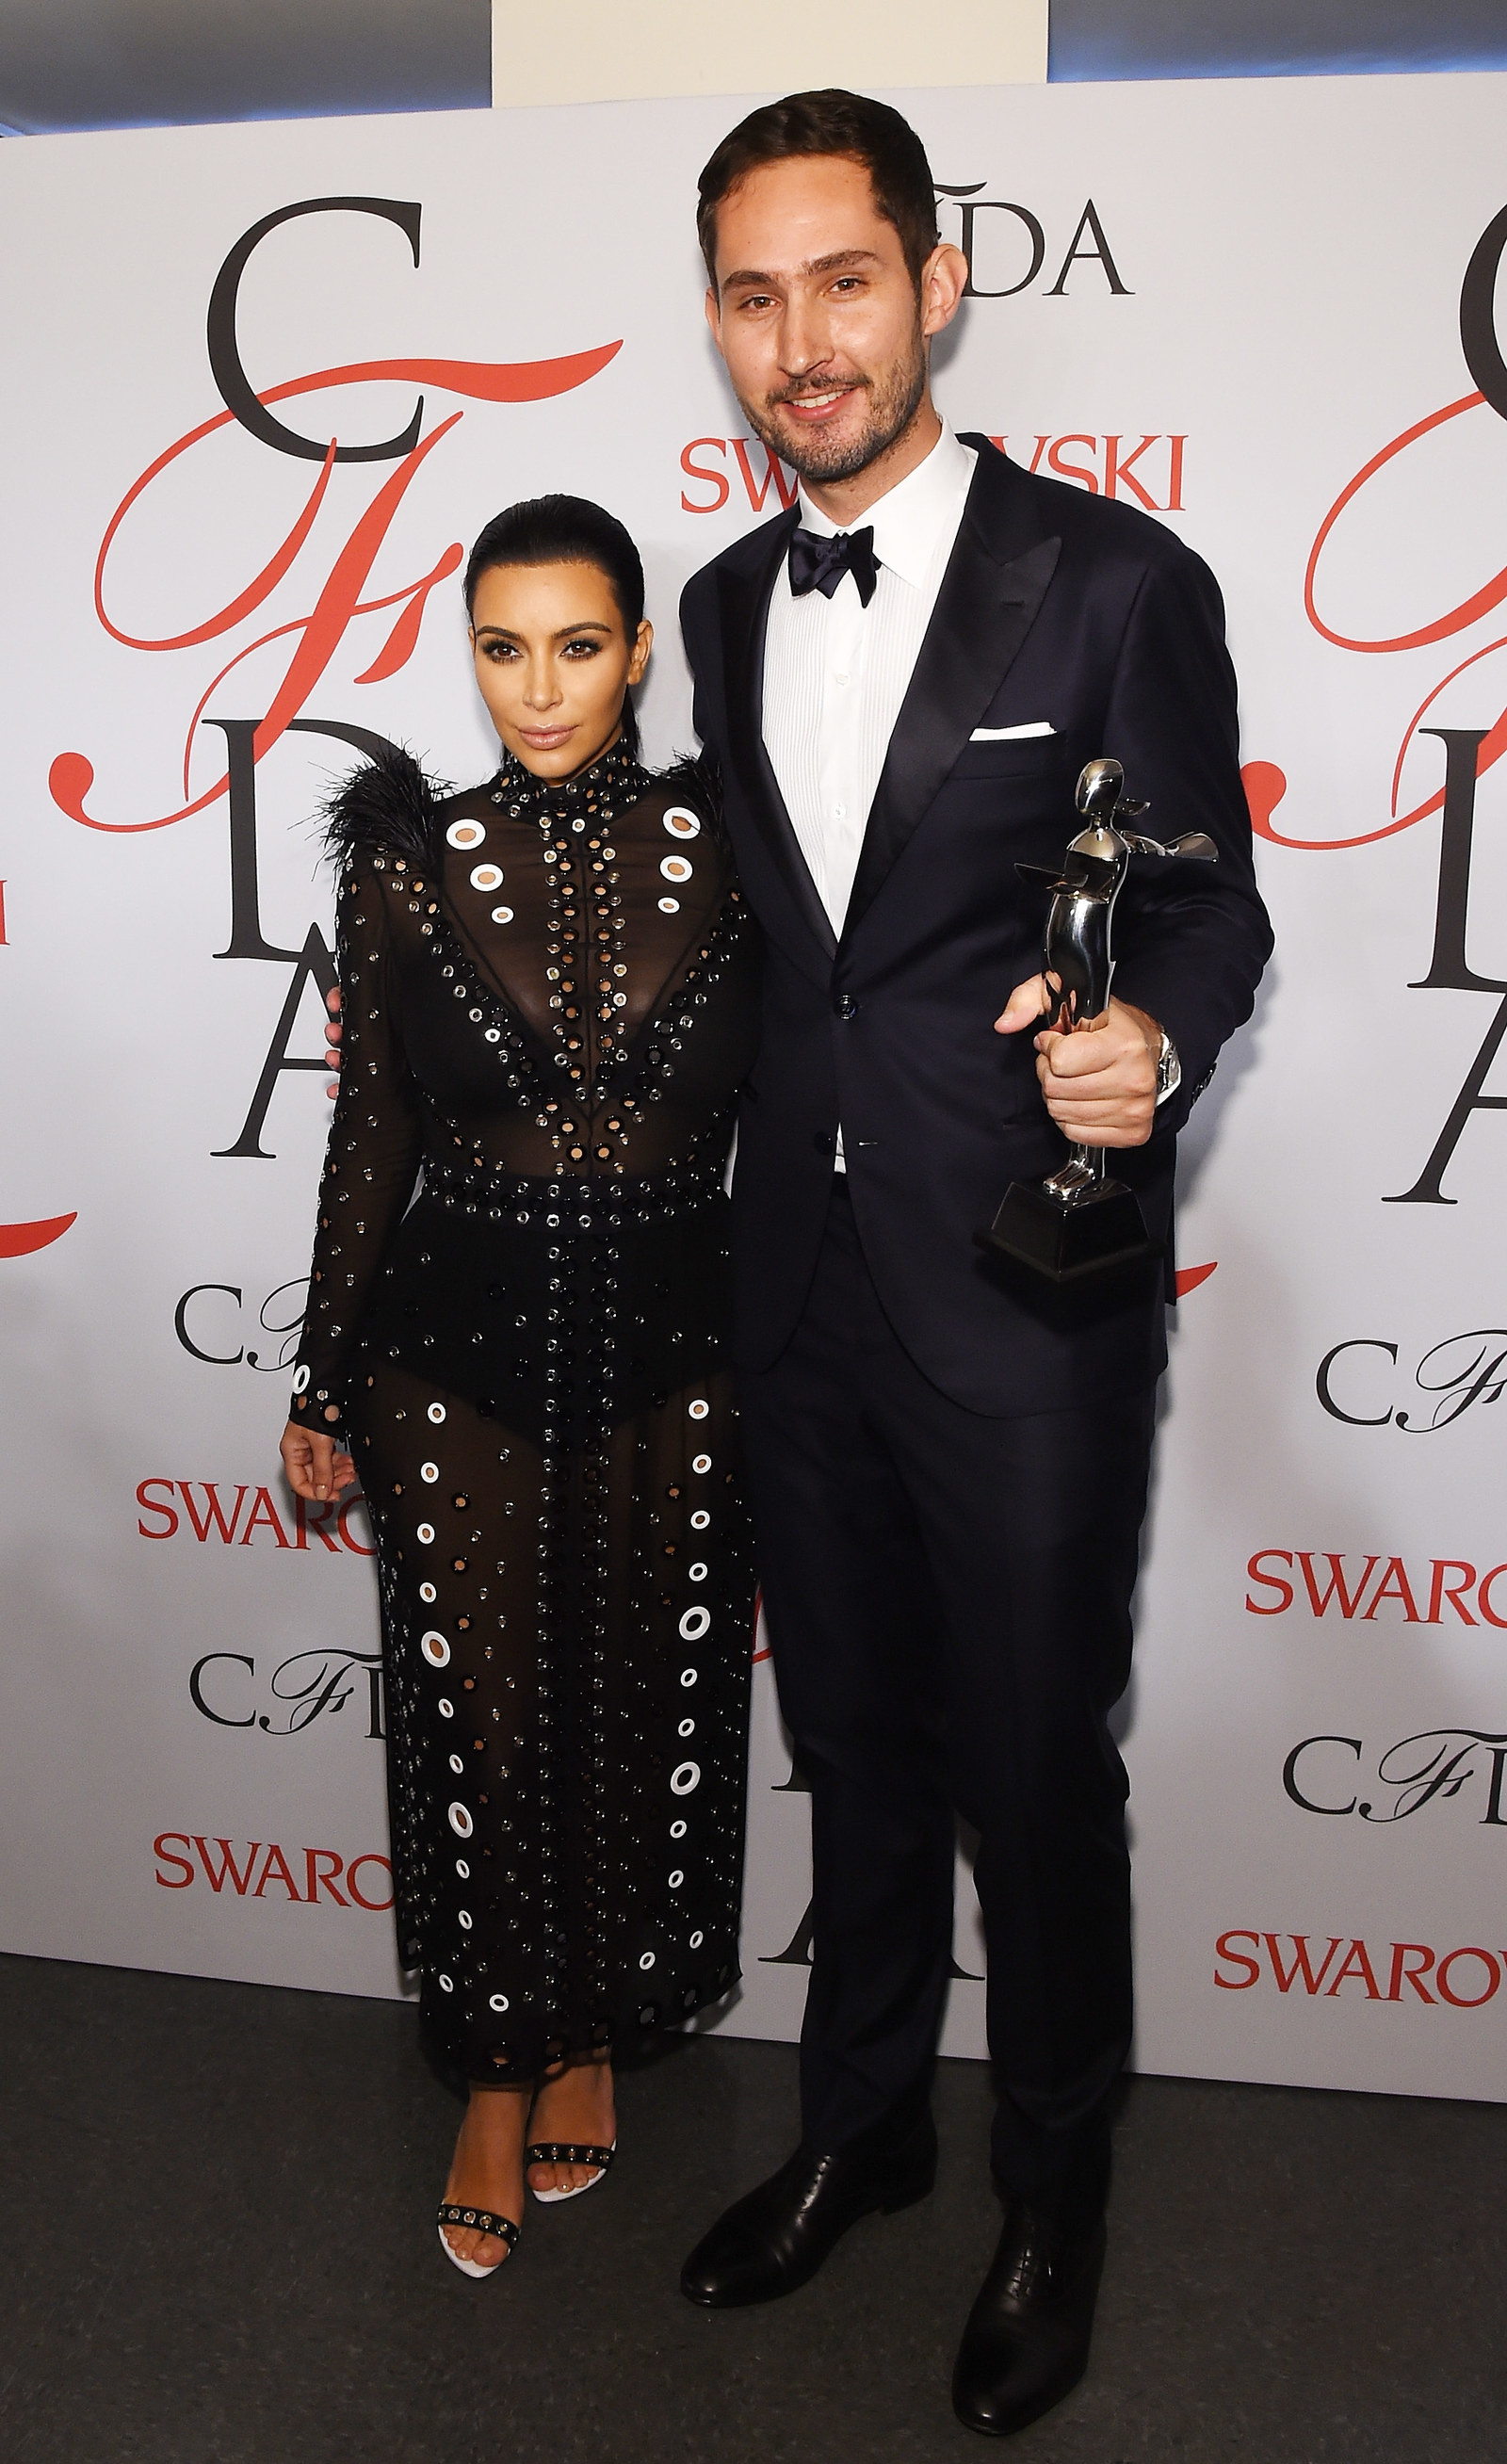 NEW YORK, NY - JUNE 01: Kim Kardashian and Kevin Systrom pose on the winners walk at the 2015 CFDA Fashion Awards at Alice Tully Hall at Lincoln Center on June 1, 2015 in New York City. (Photo by Larry Busacca/Getty Images)